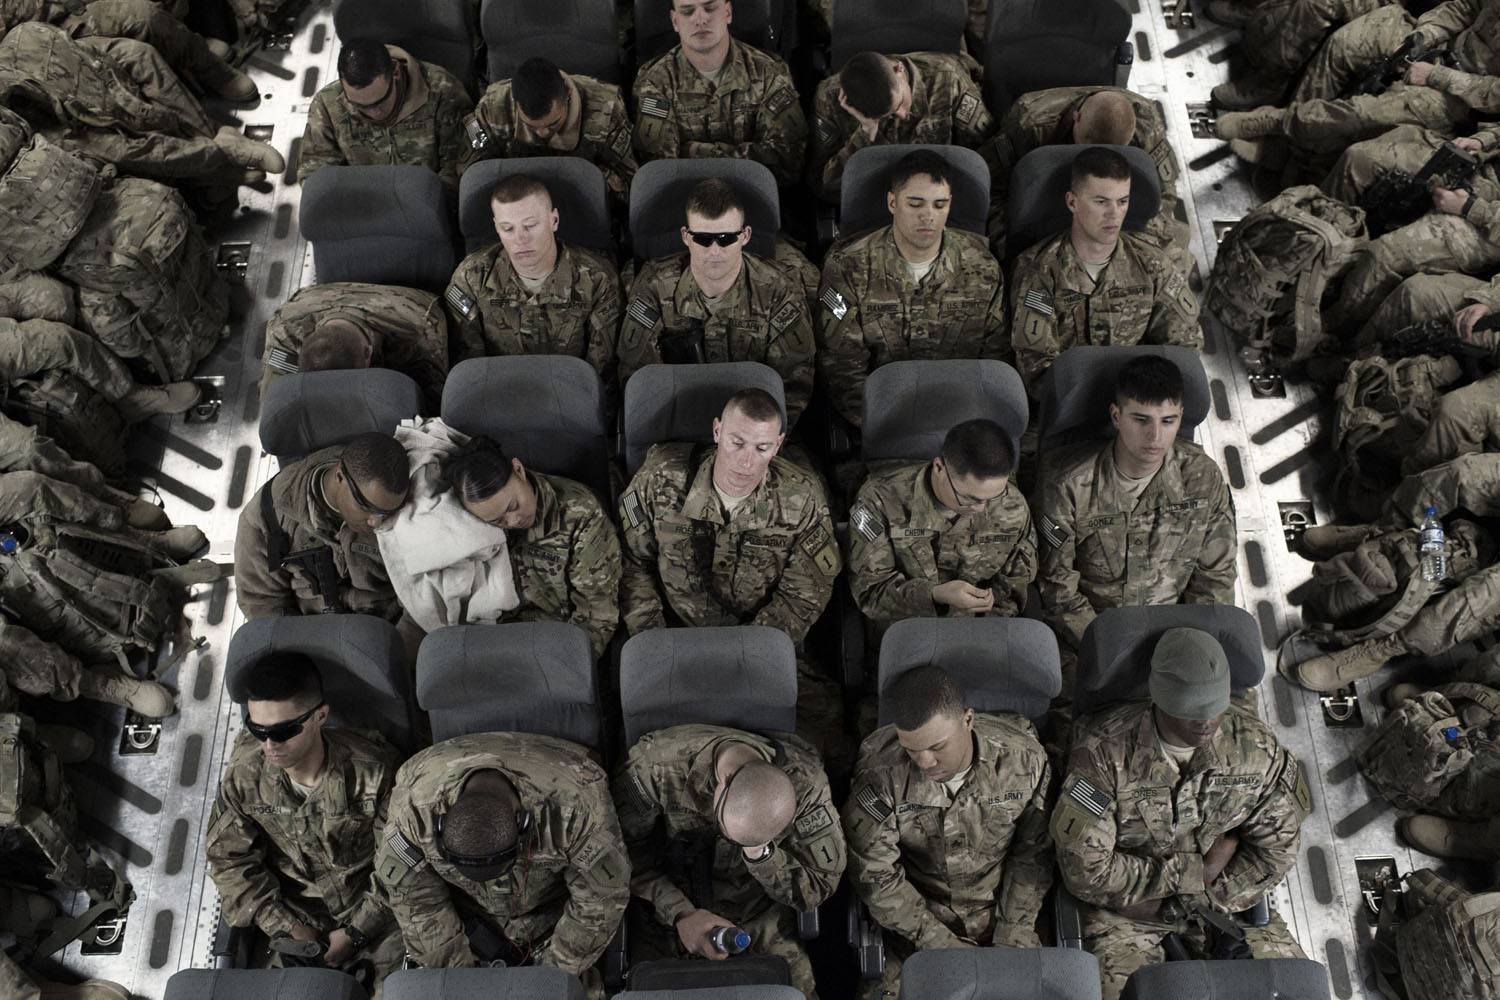 Soldiers from the 101st Airborne and 1st Infantry Divisions await takeoff in the C-17 Globemaster that will take them from Bagram to Manas Airbase in Kyrgyzstan. There, they will await contracted flights home.